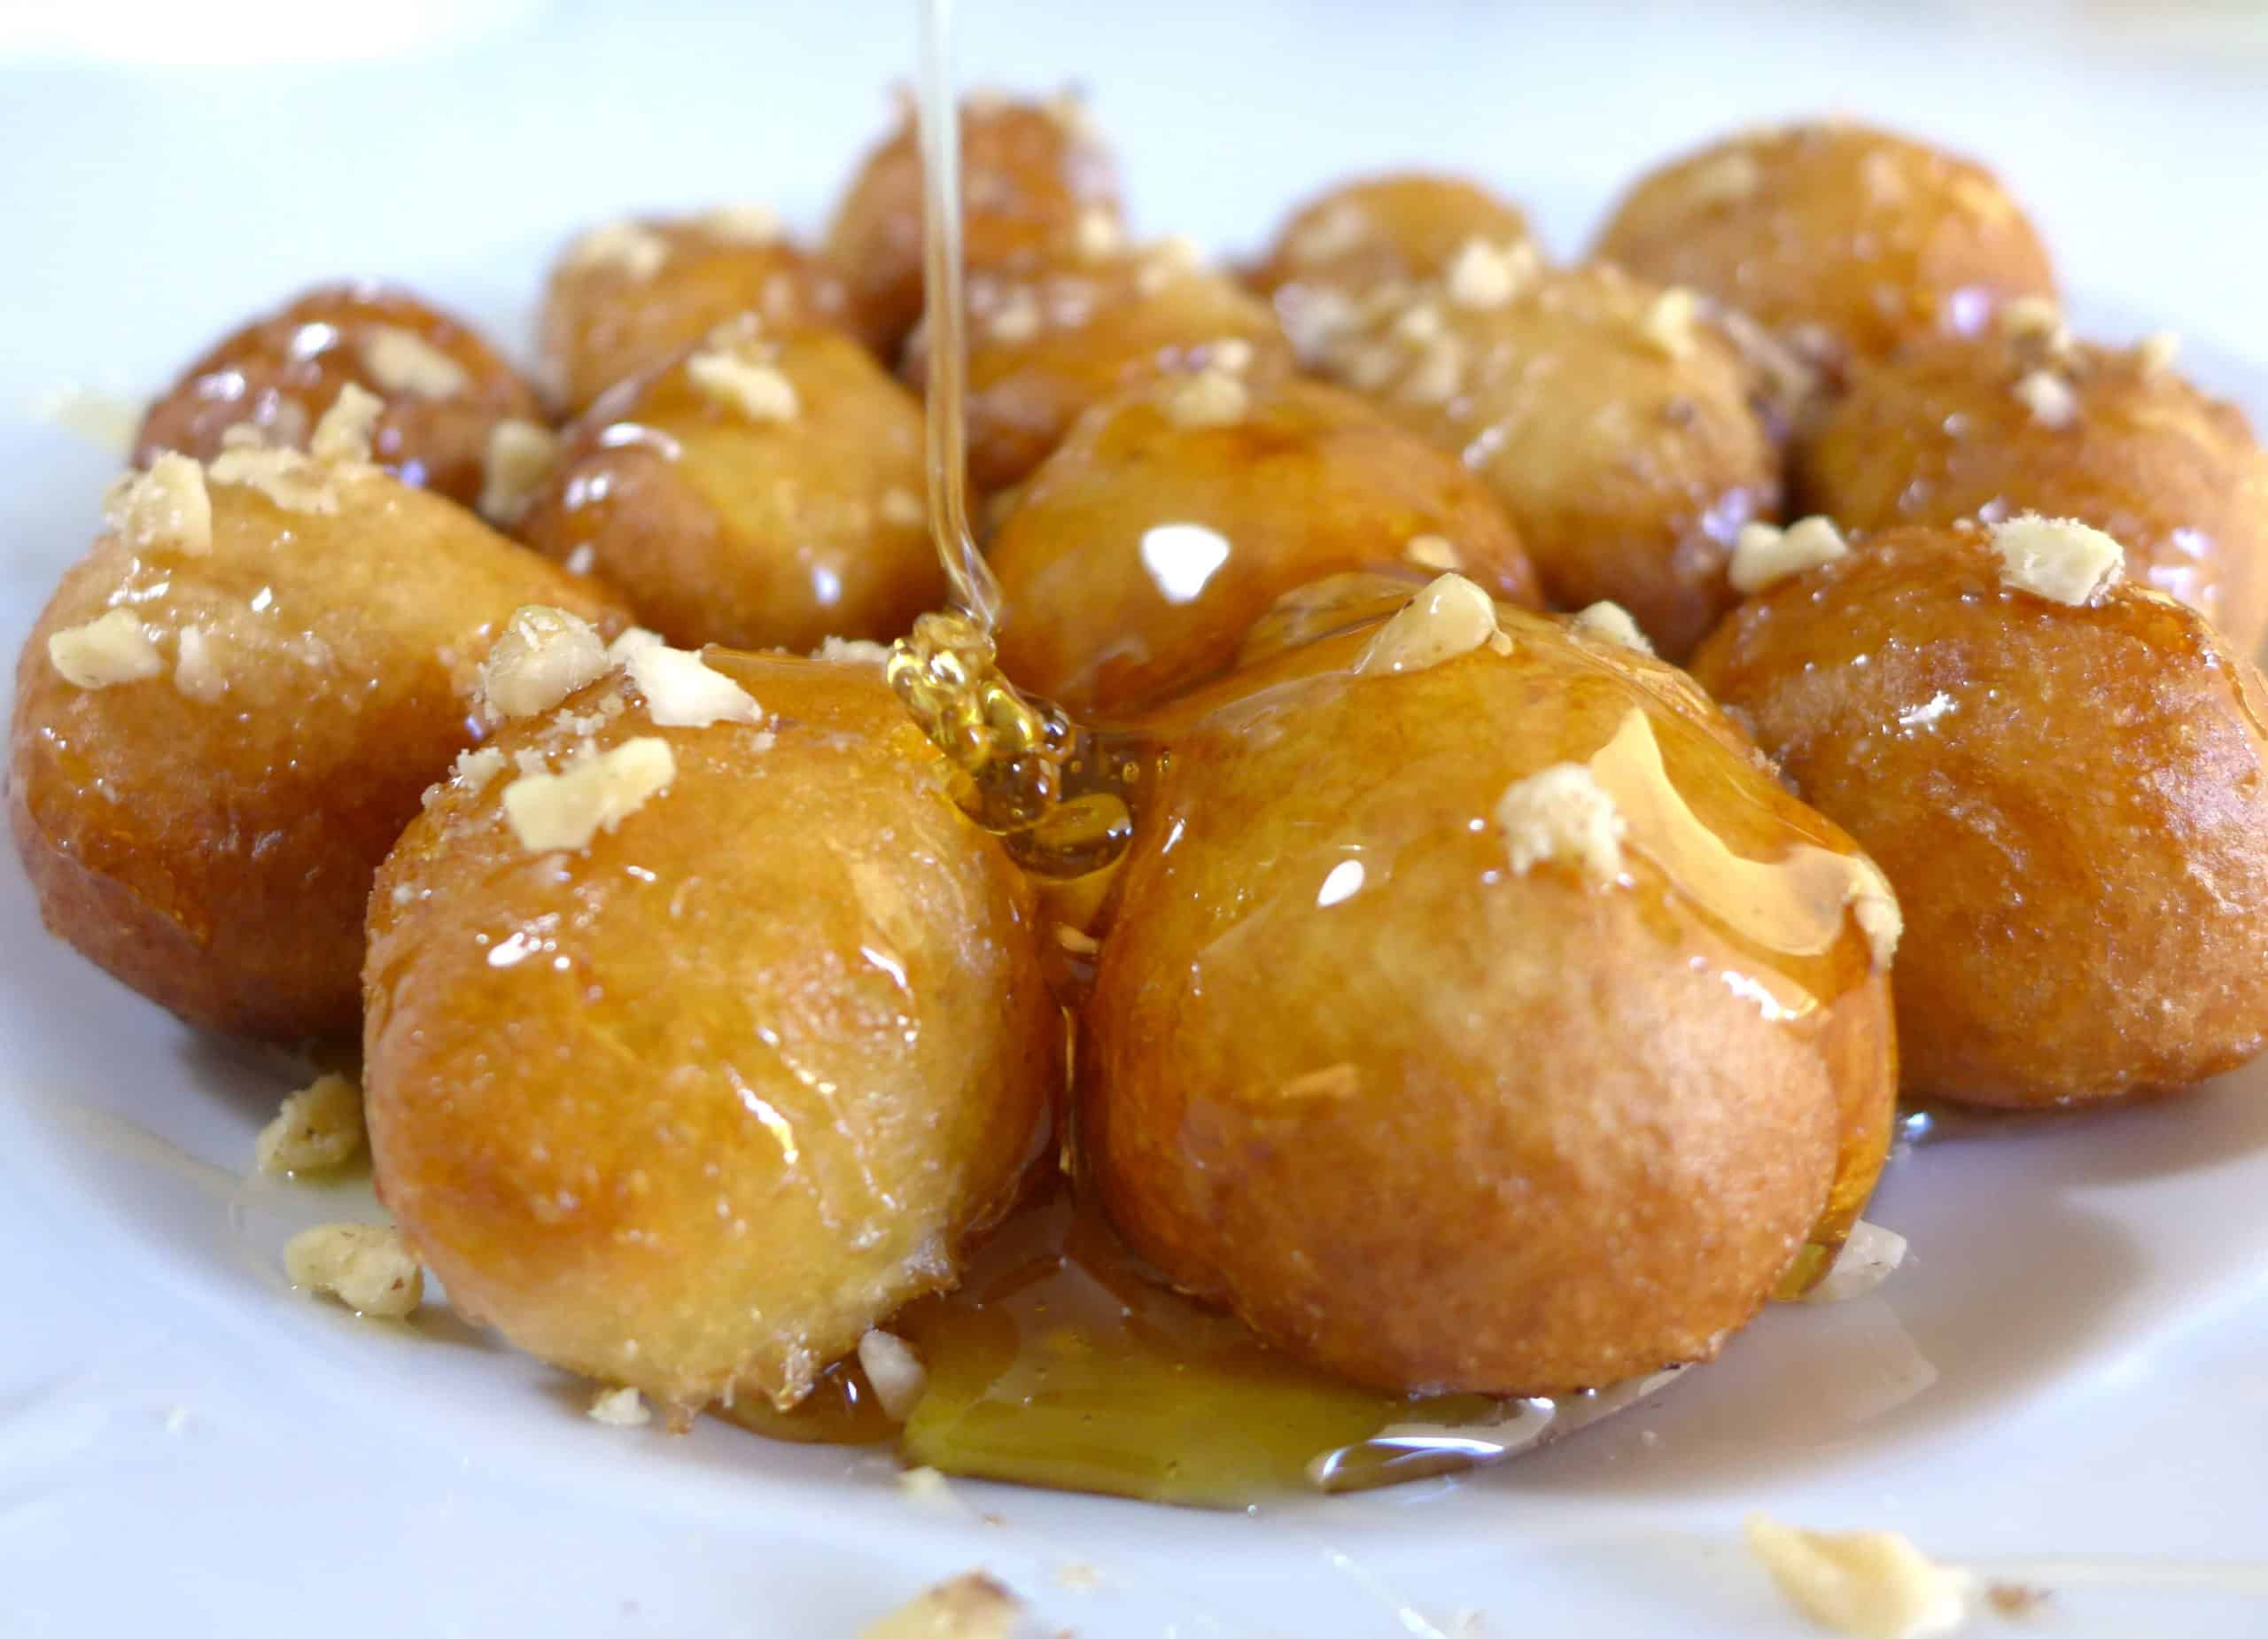 Greek donuts (Loukoumades) drizzled with honey and walnuts